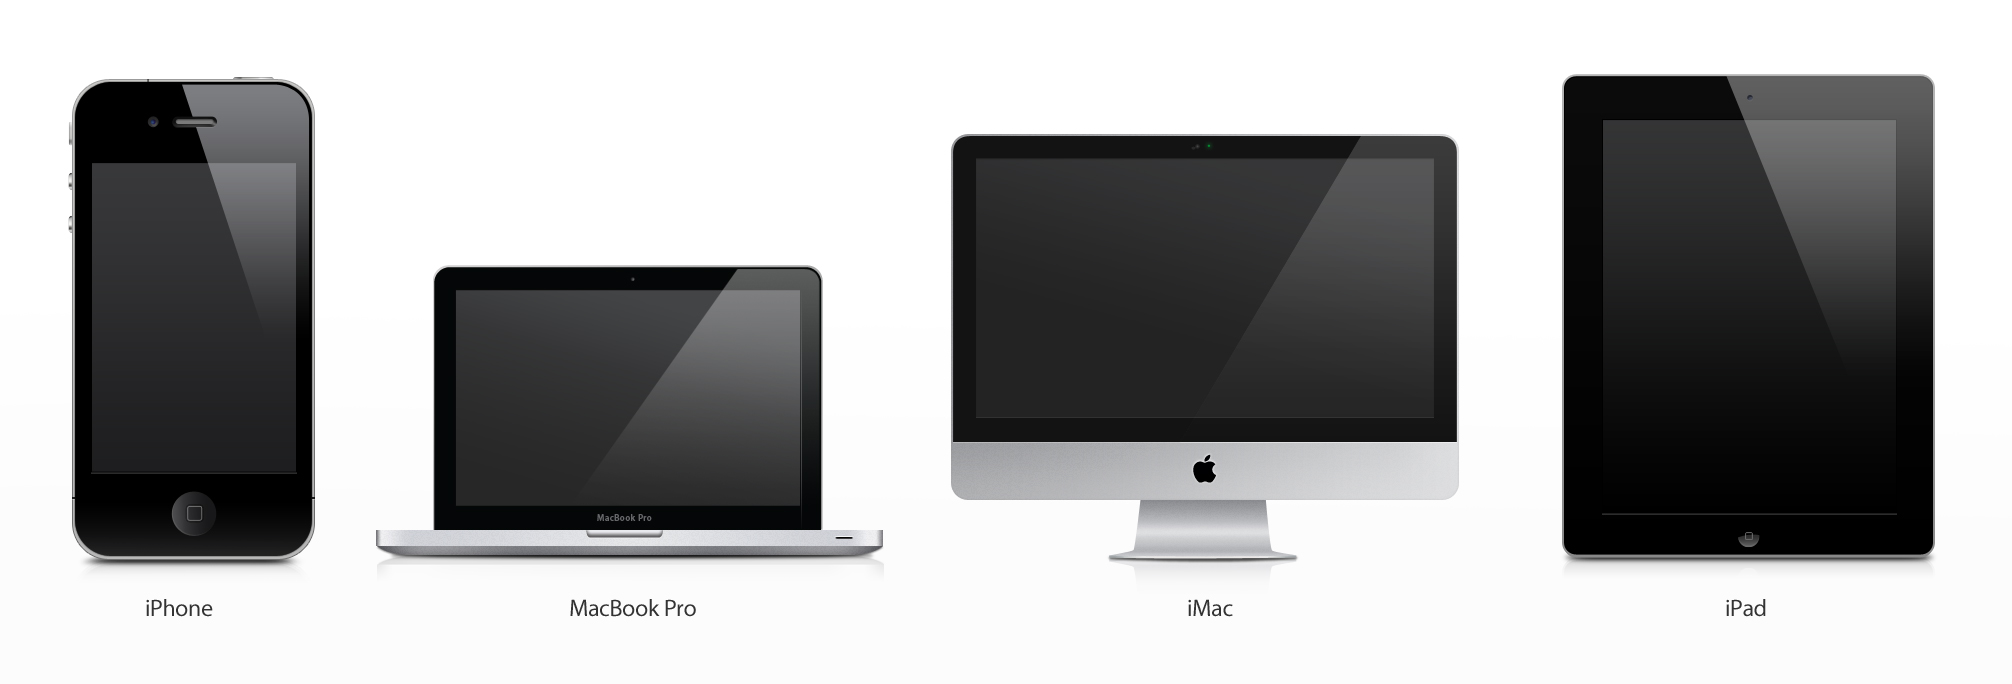 Apple Product Icons by MarkBauer on DeviantArt